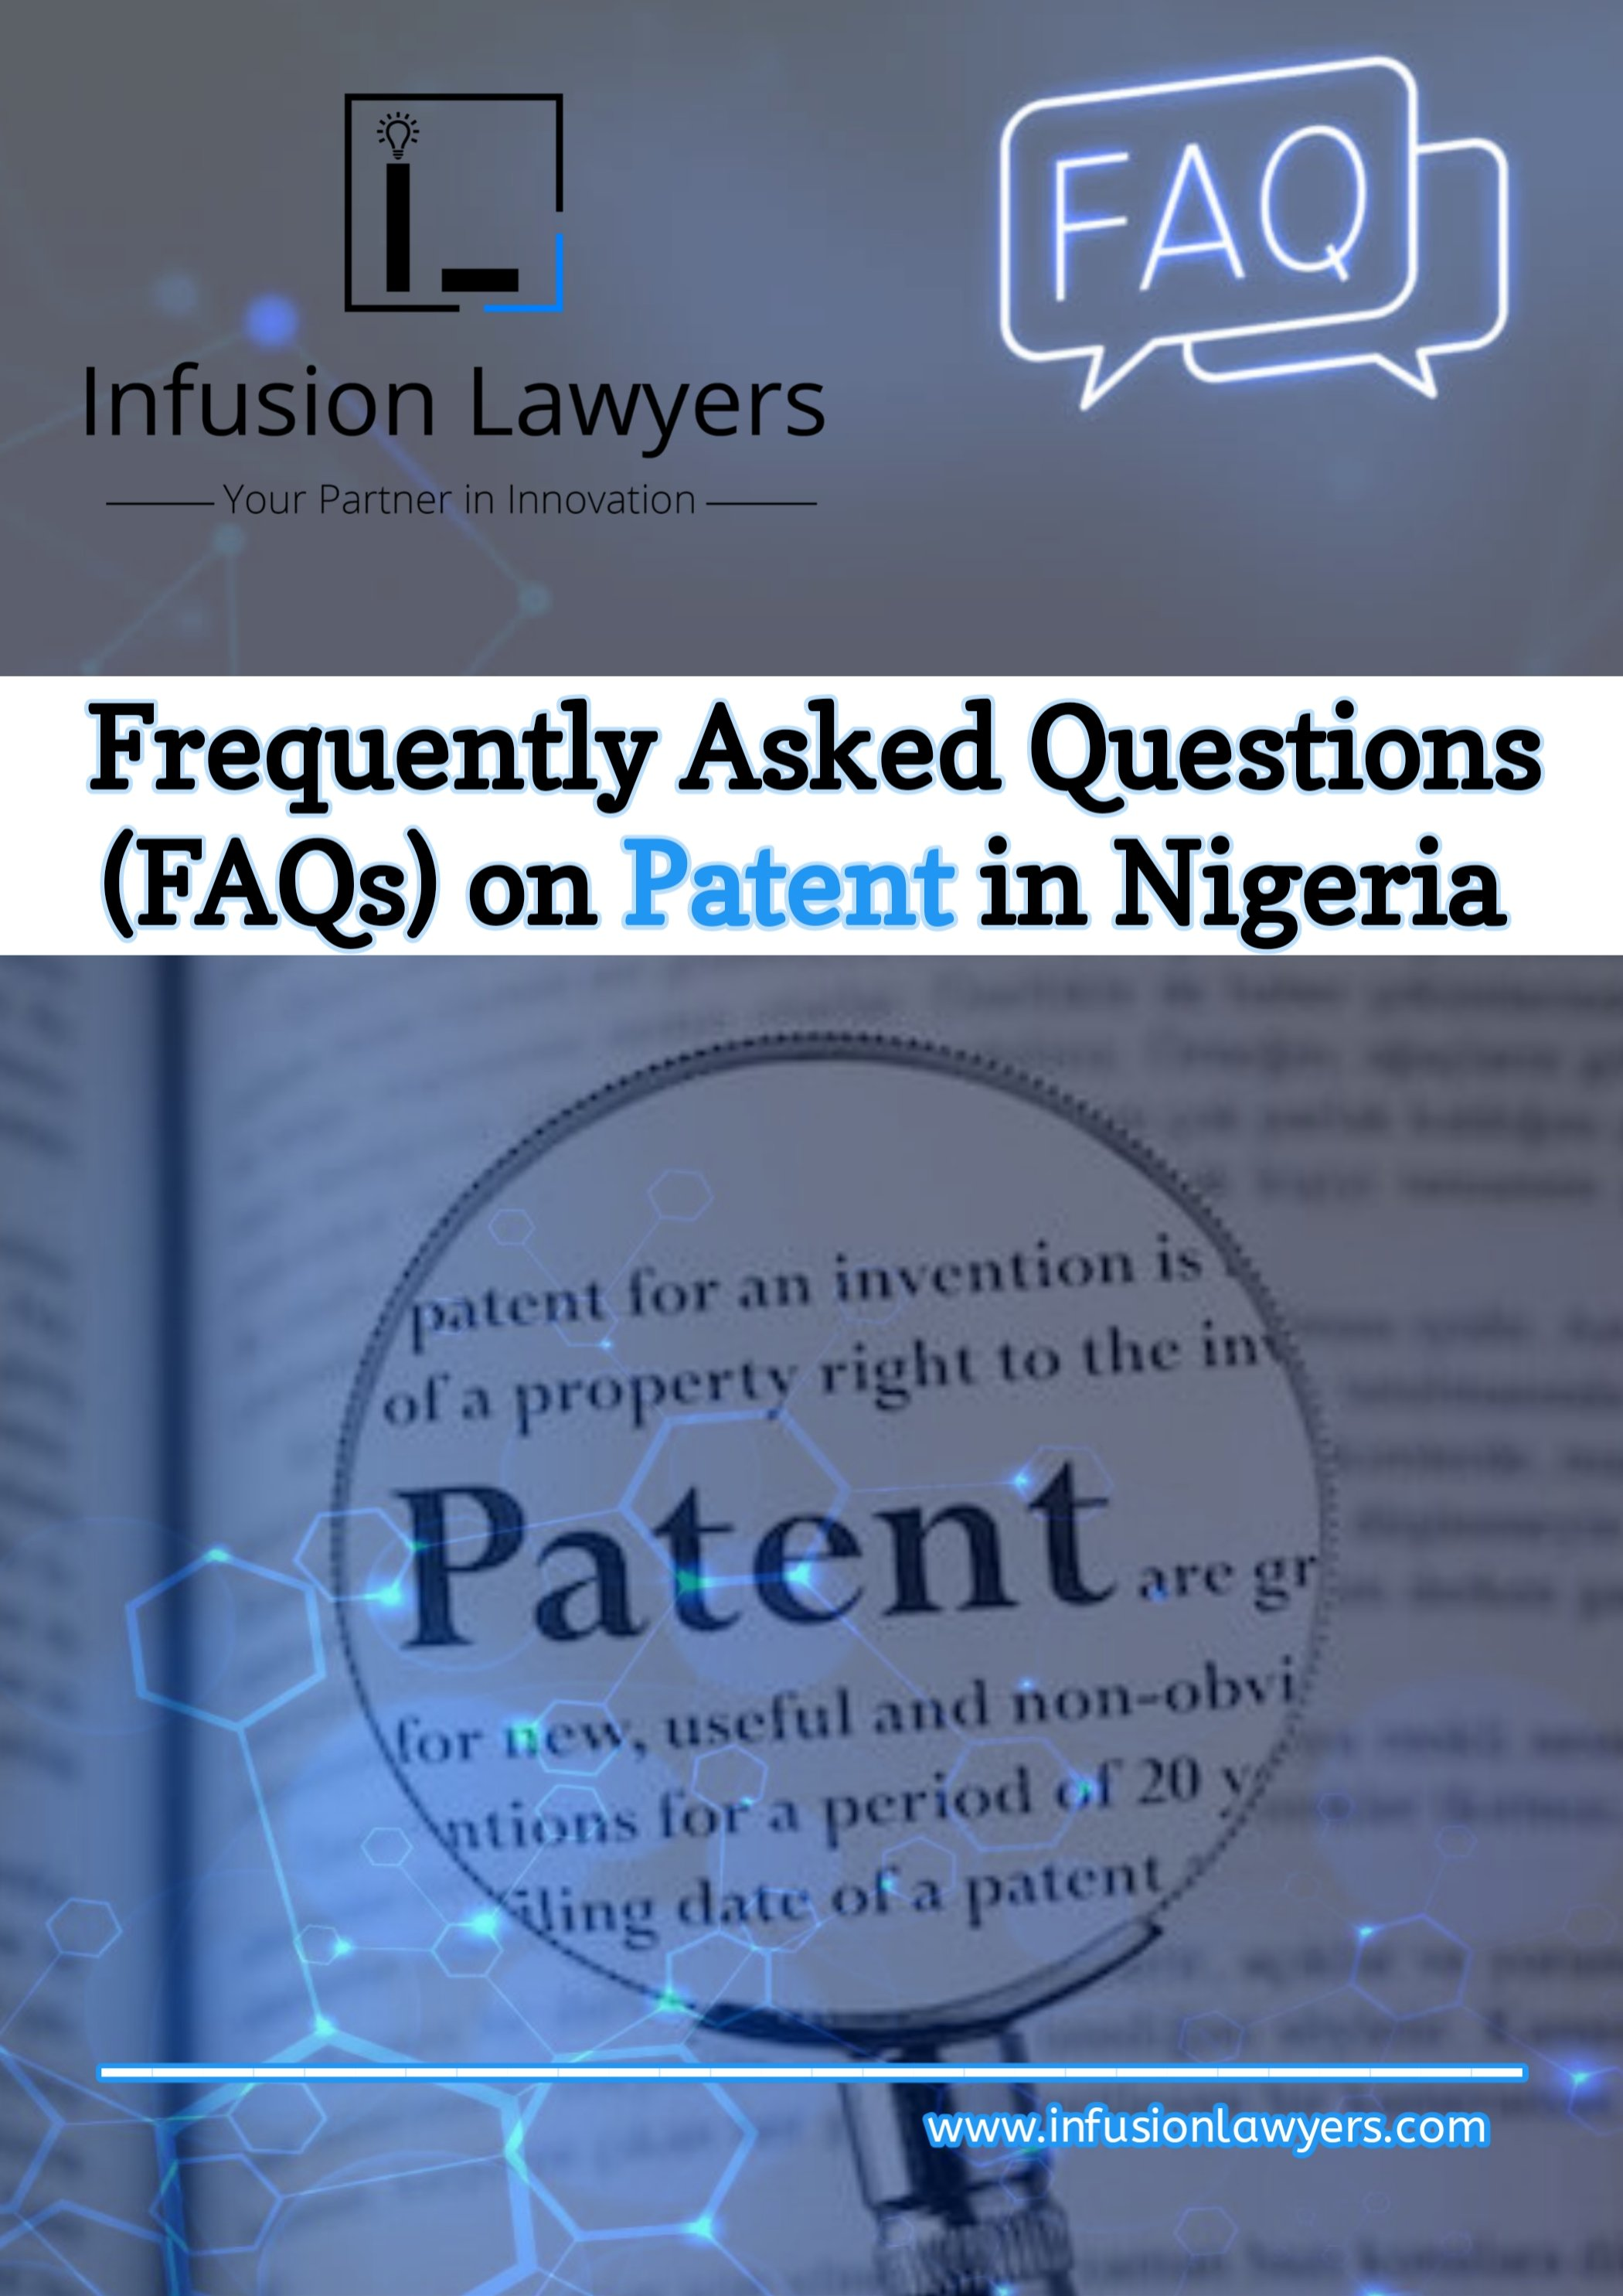 FAQS on Patent in Nigeria by Infusion Lawyers